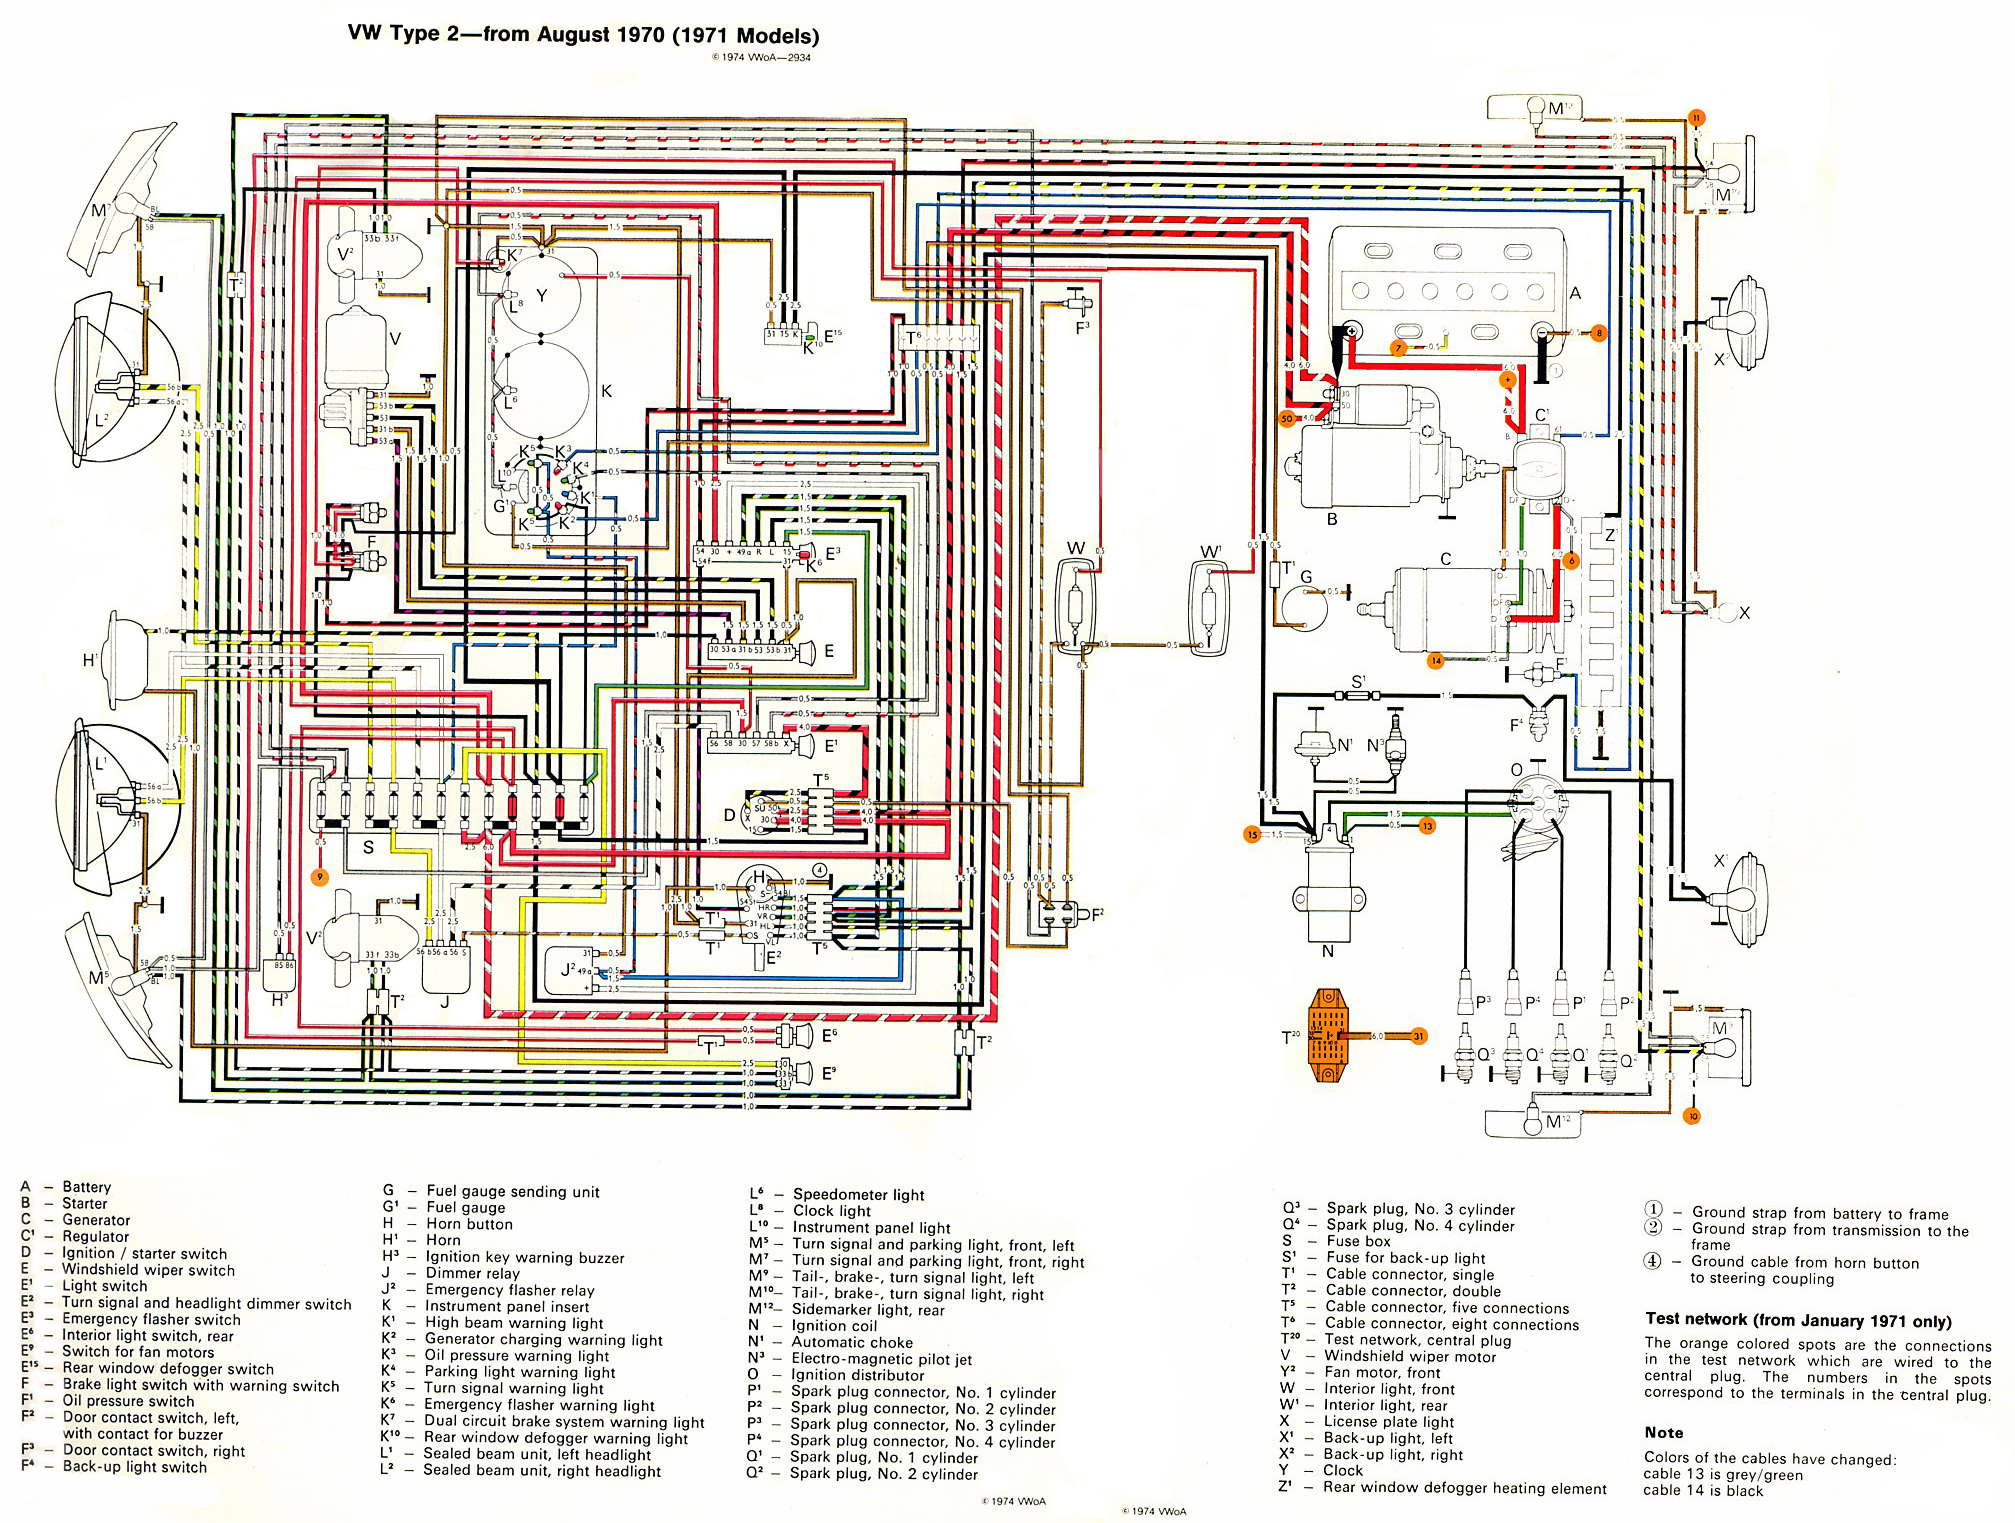 baybus_71_fixed vw t4 horn wiring diagram efcaviation com vw t4 fuse box wiring diagram at mifinder.co